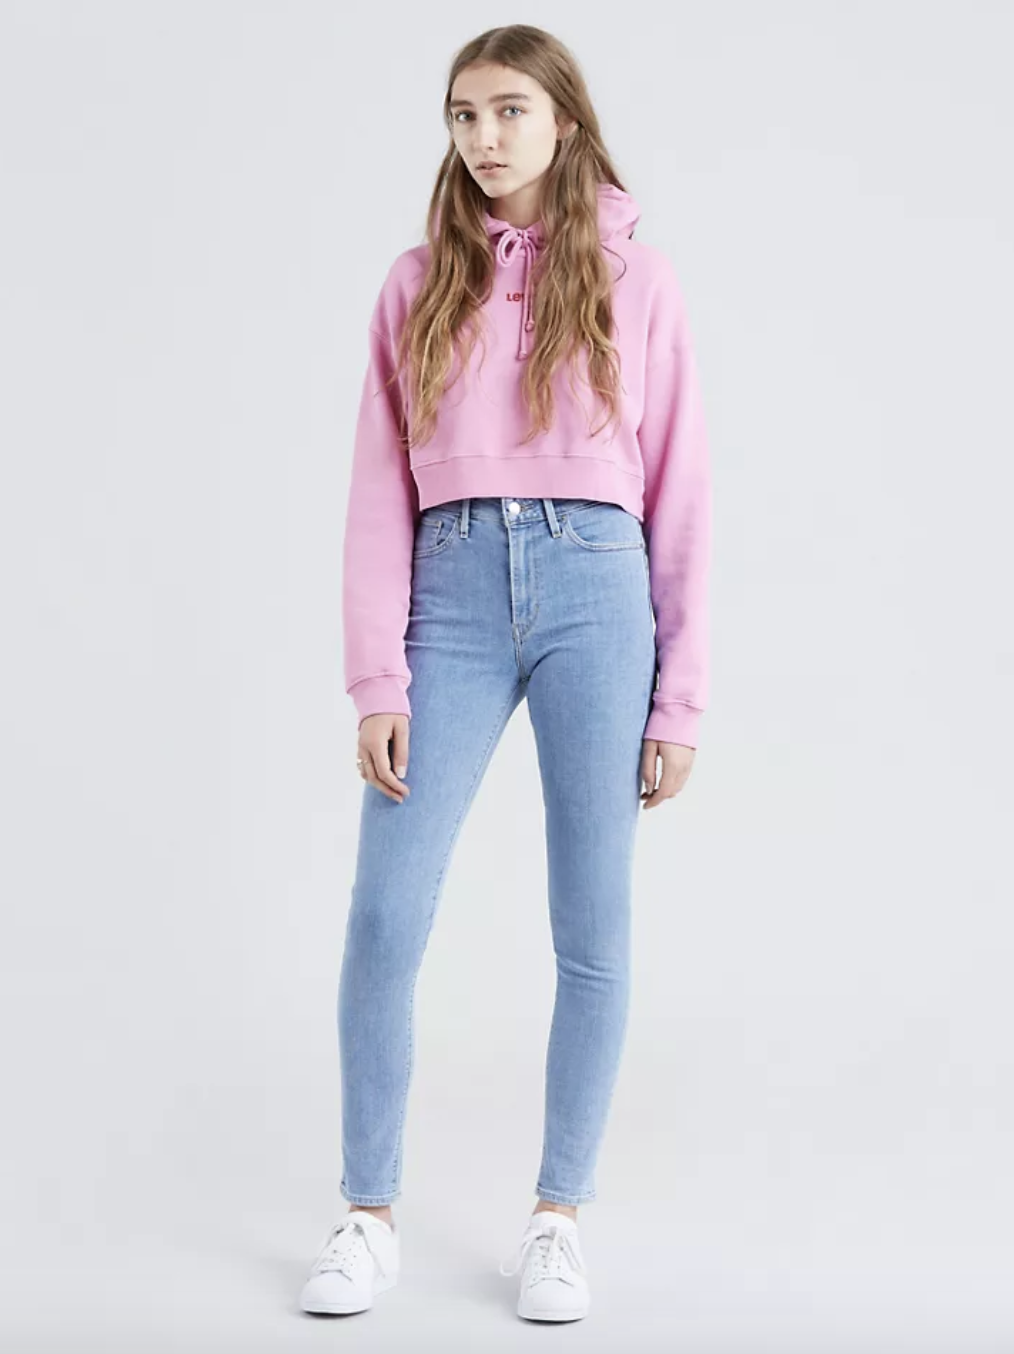 Model in light wash high waisted skinny jeans